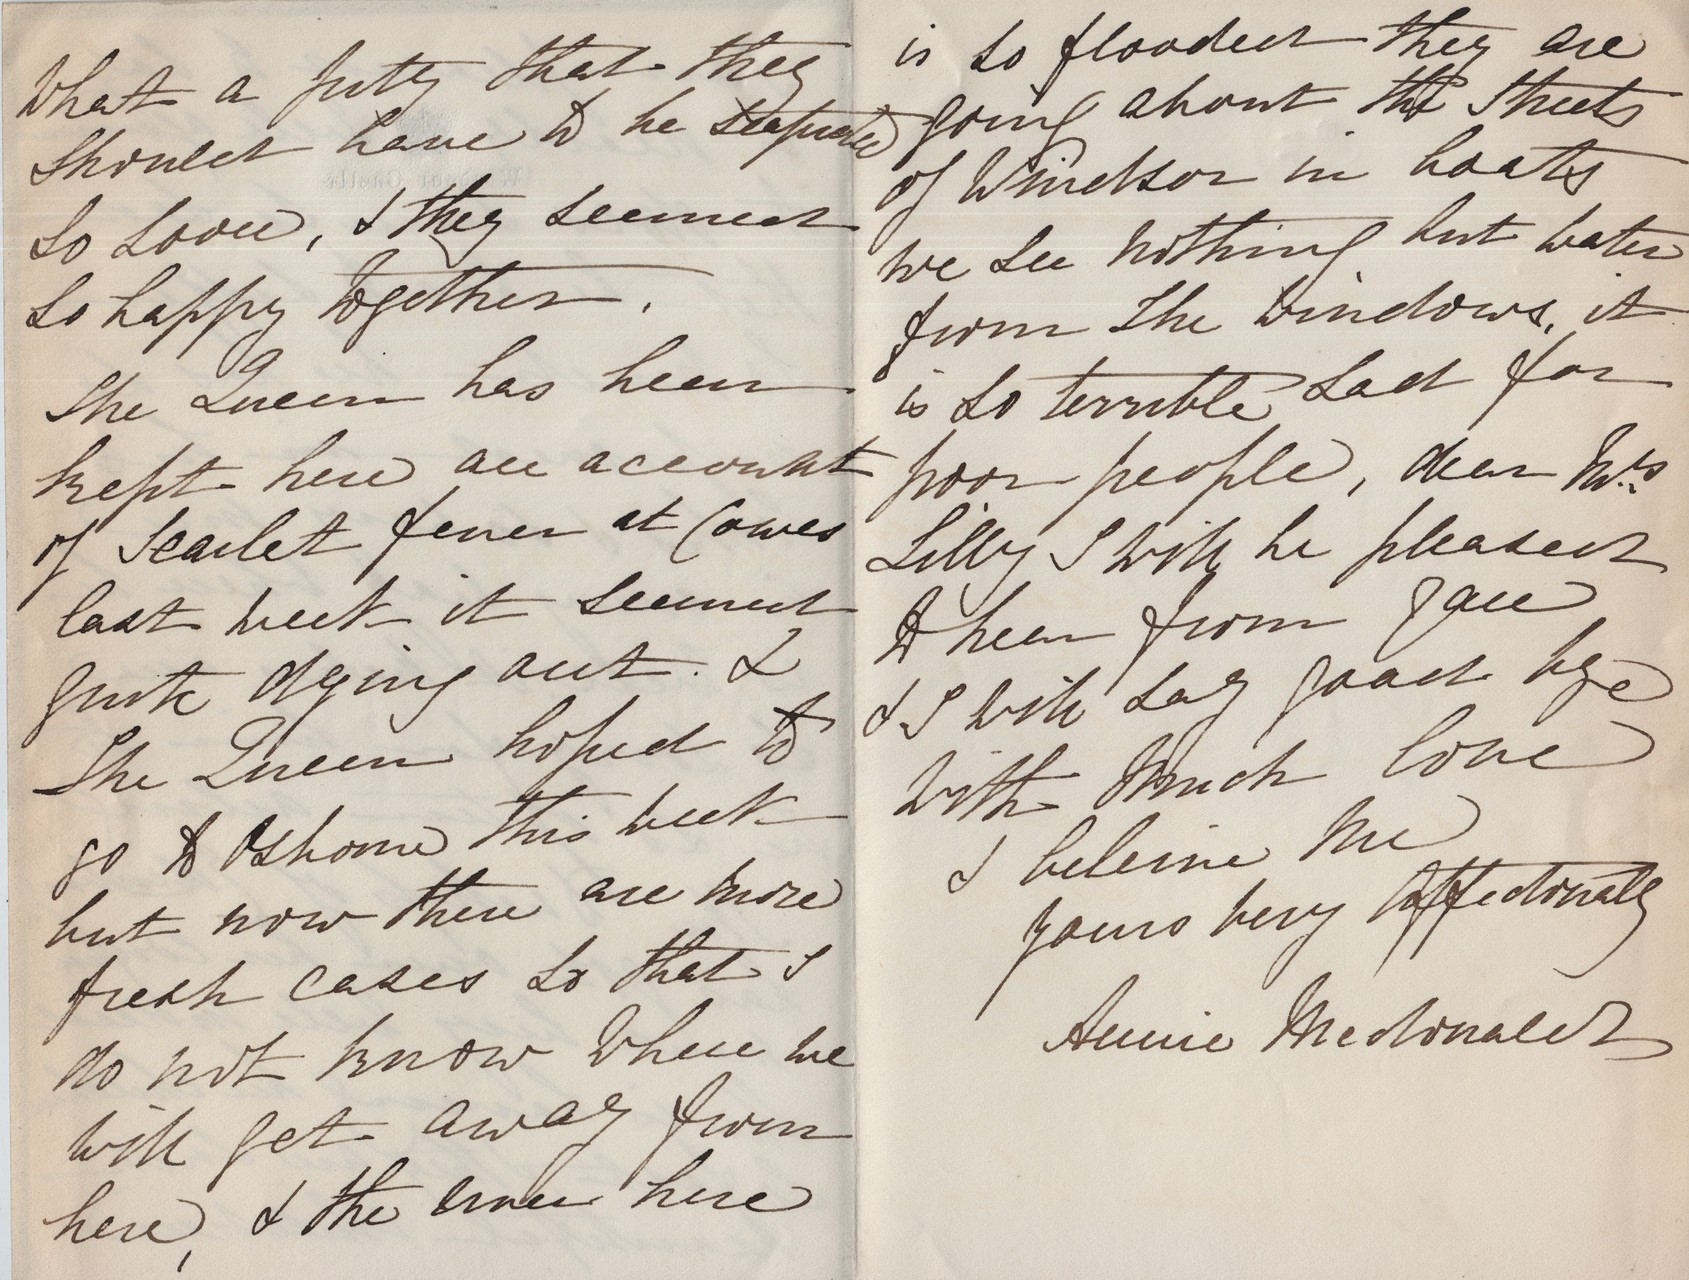 1877 Annie MacDonald to MDL